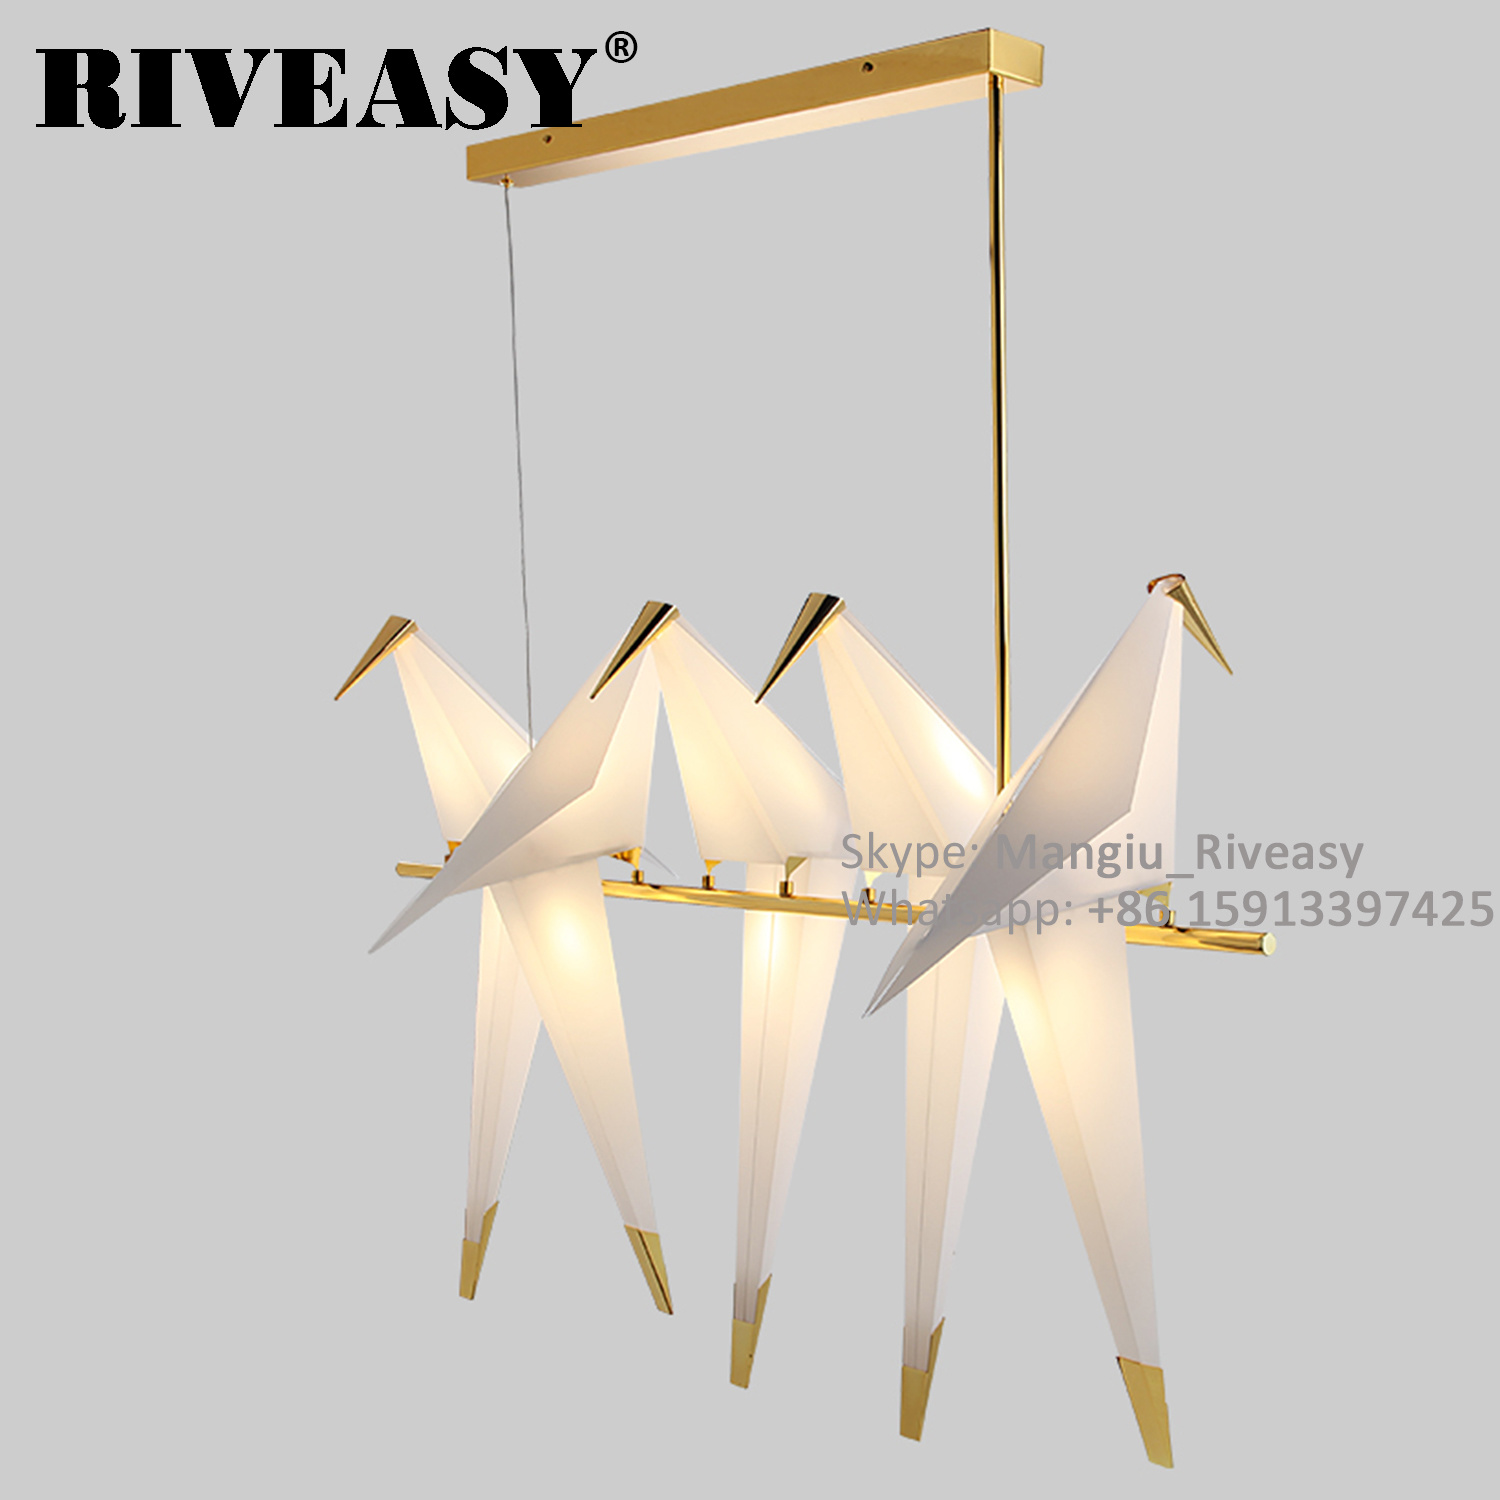 China bird pendant light for bar or cafe china pendant lamp china bird pendant light for bar or cafe china pendant lamp pendant light aloadofball Gallery